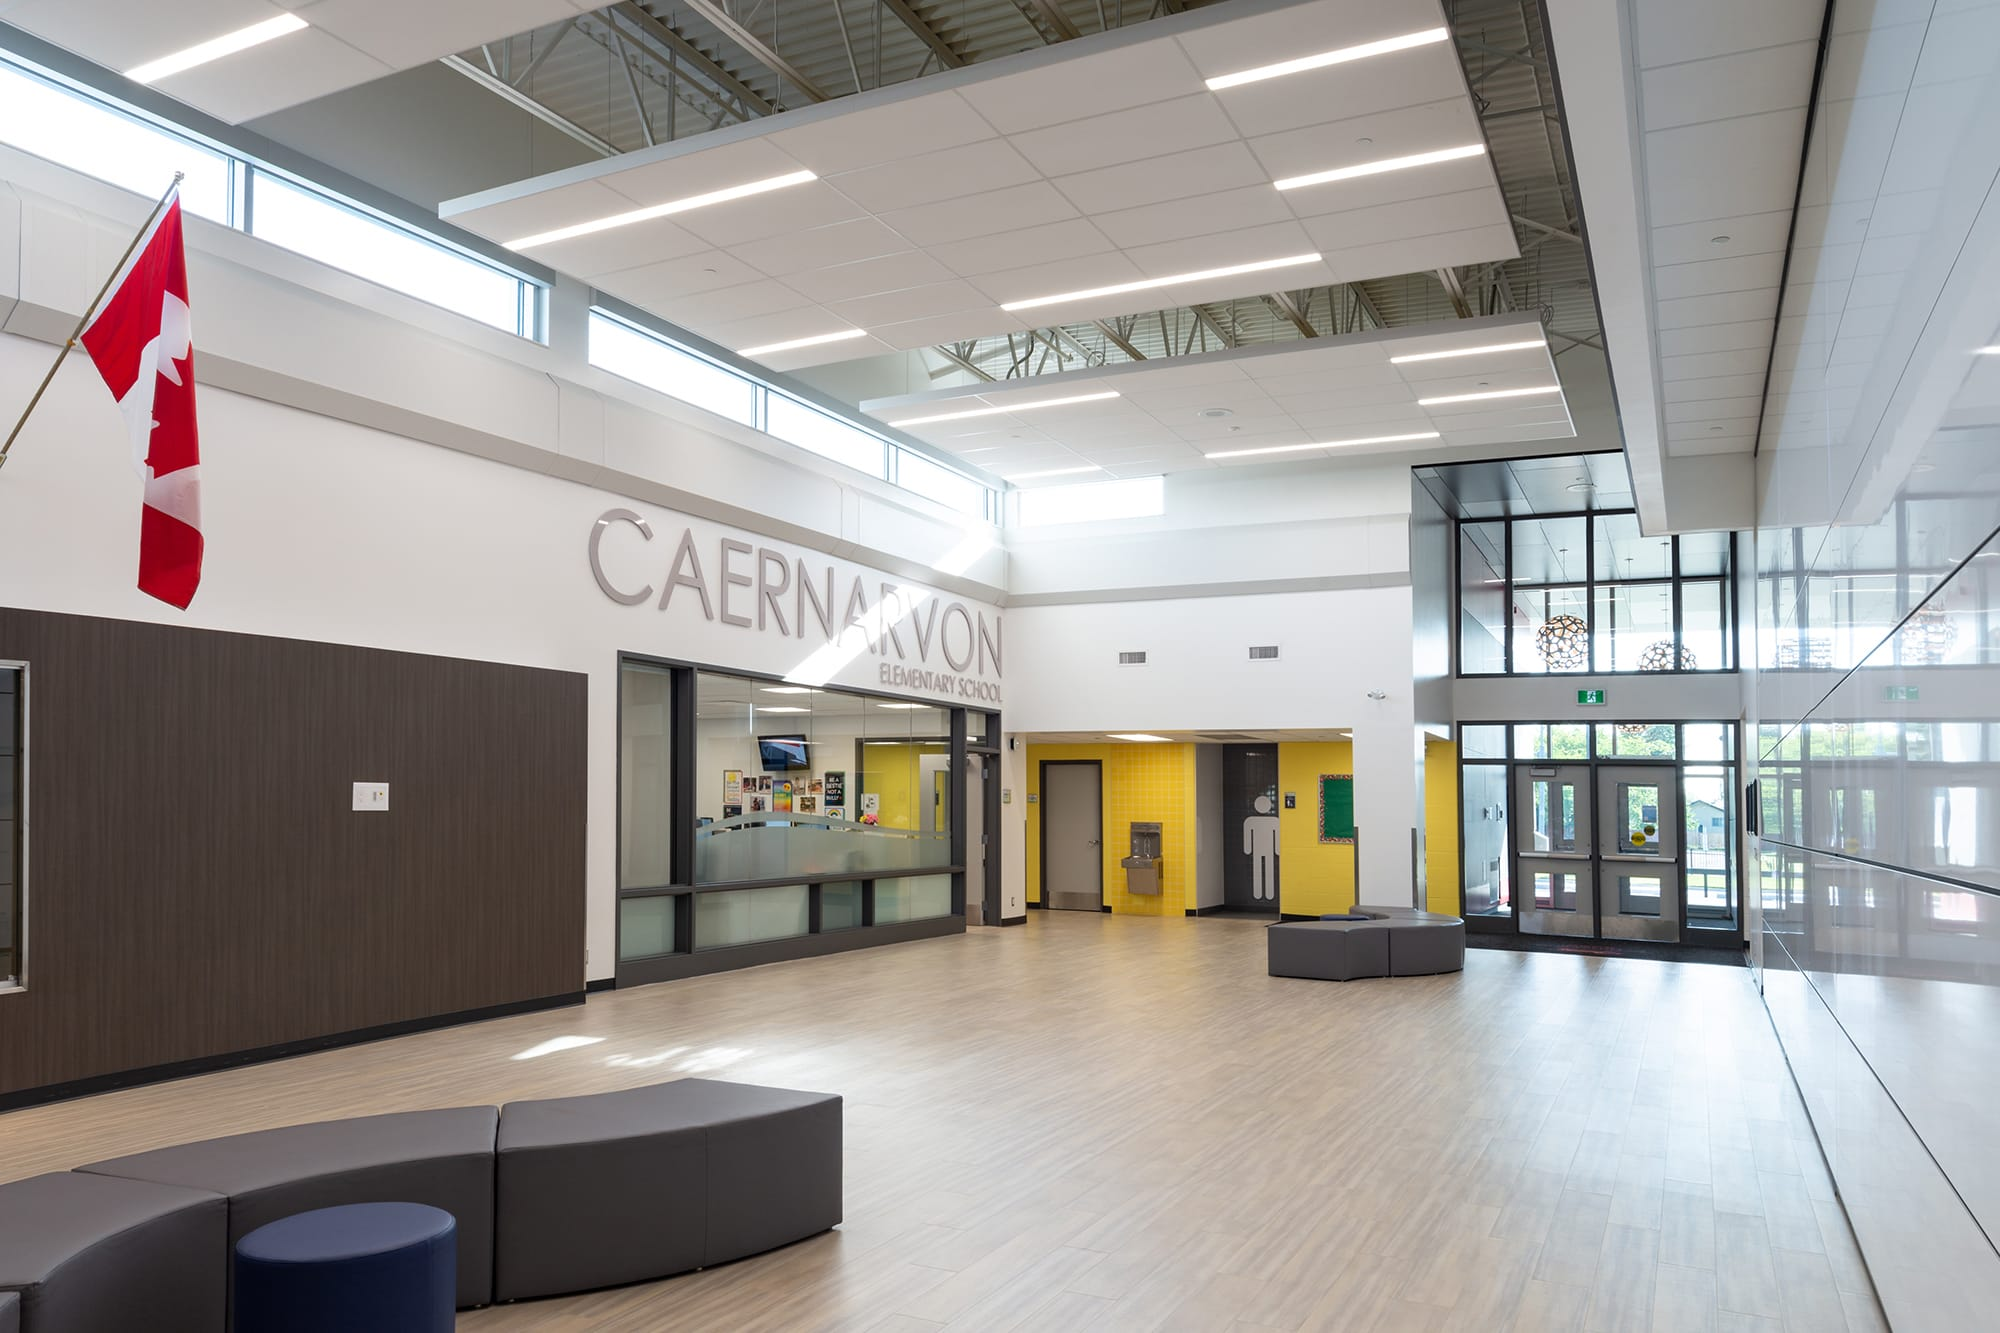 Caernarvon Elementary School entrance interior